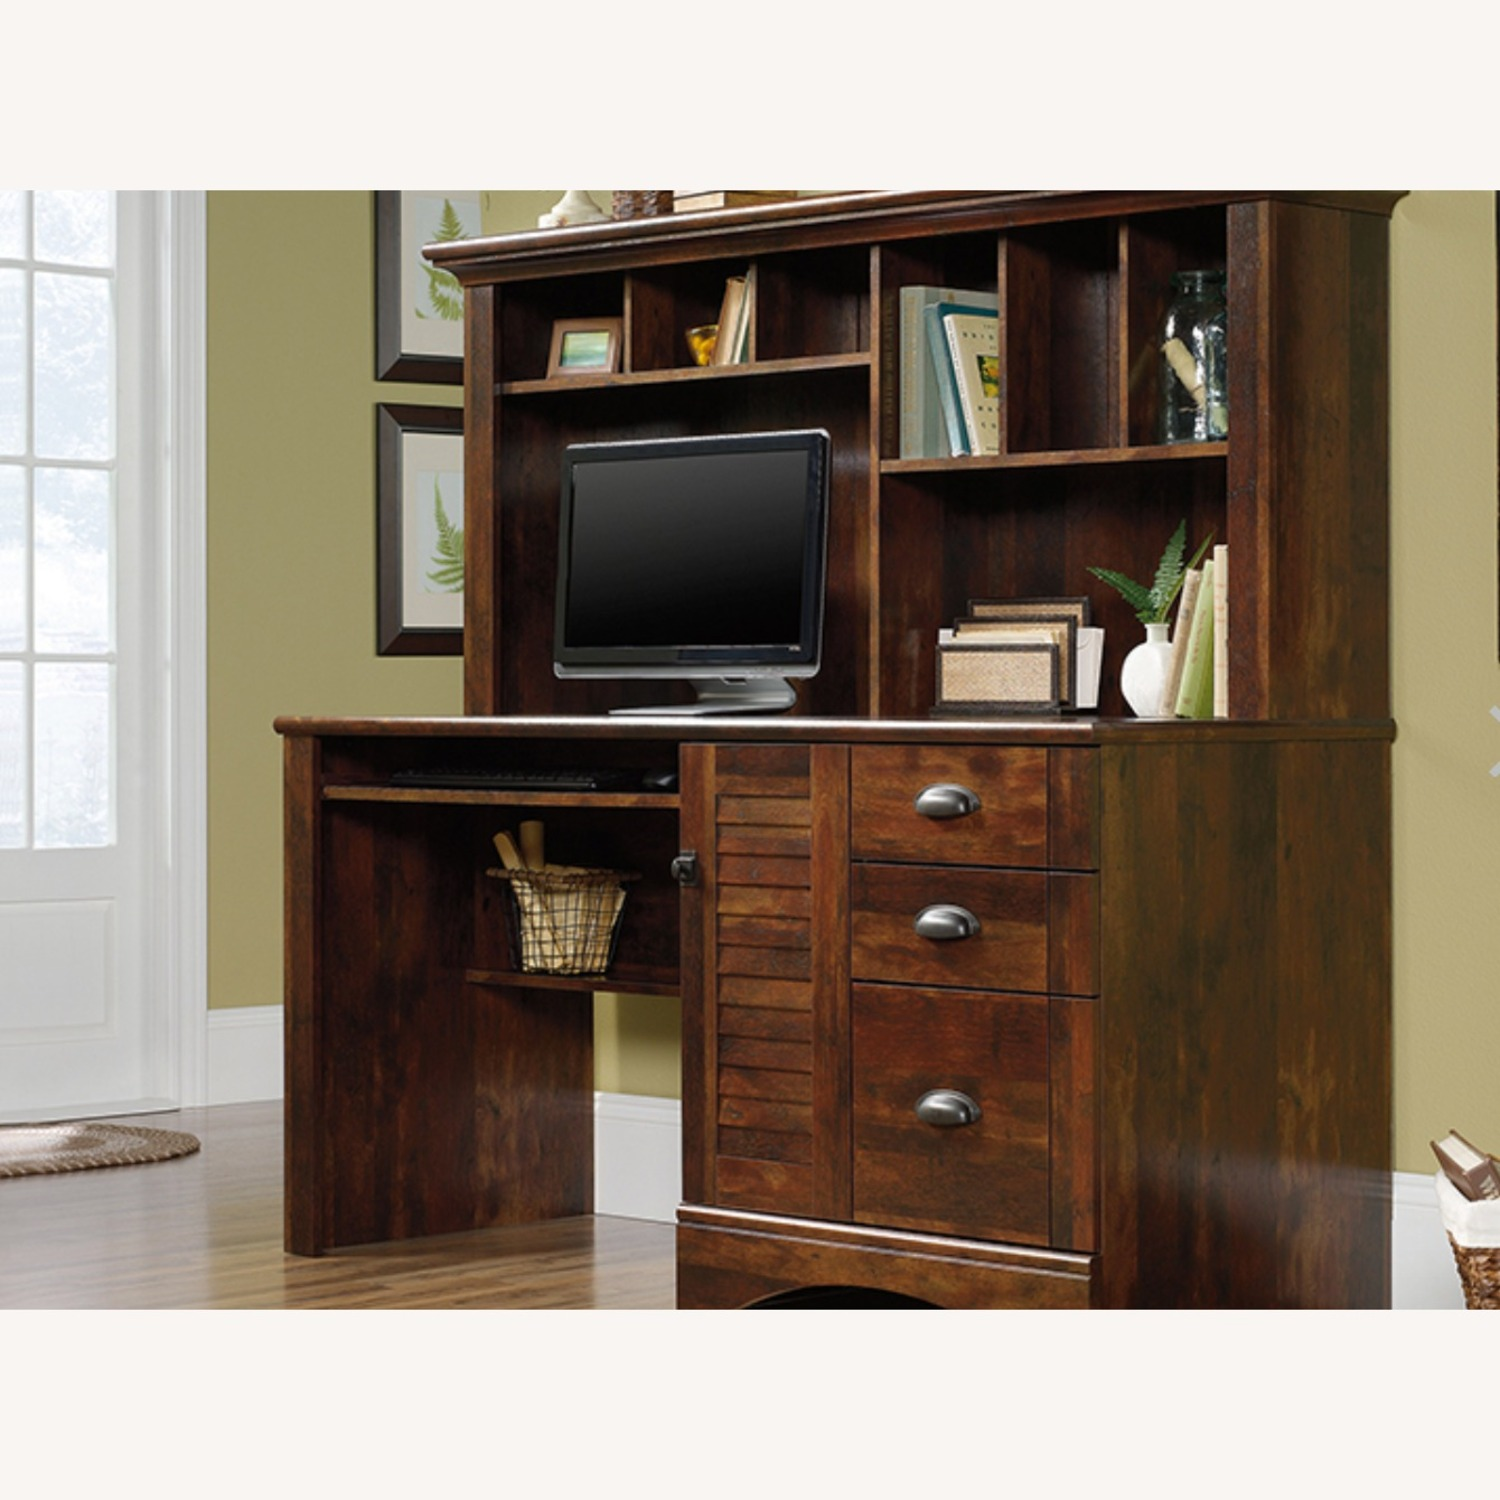 Brown Sauder Harbor View Desk with Hutch - image-1